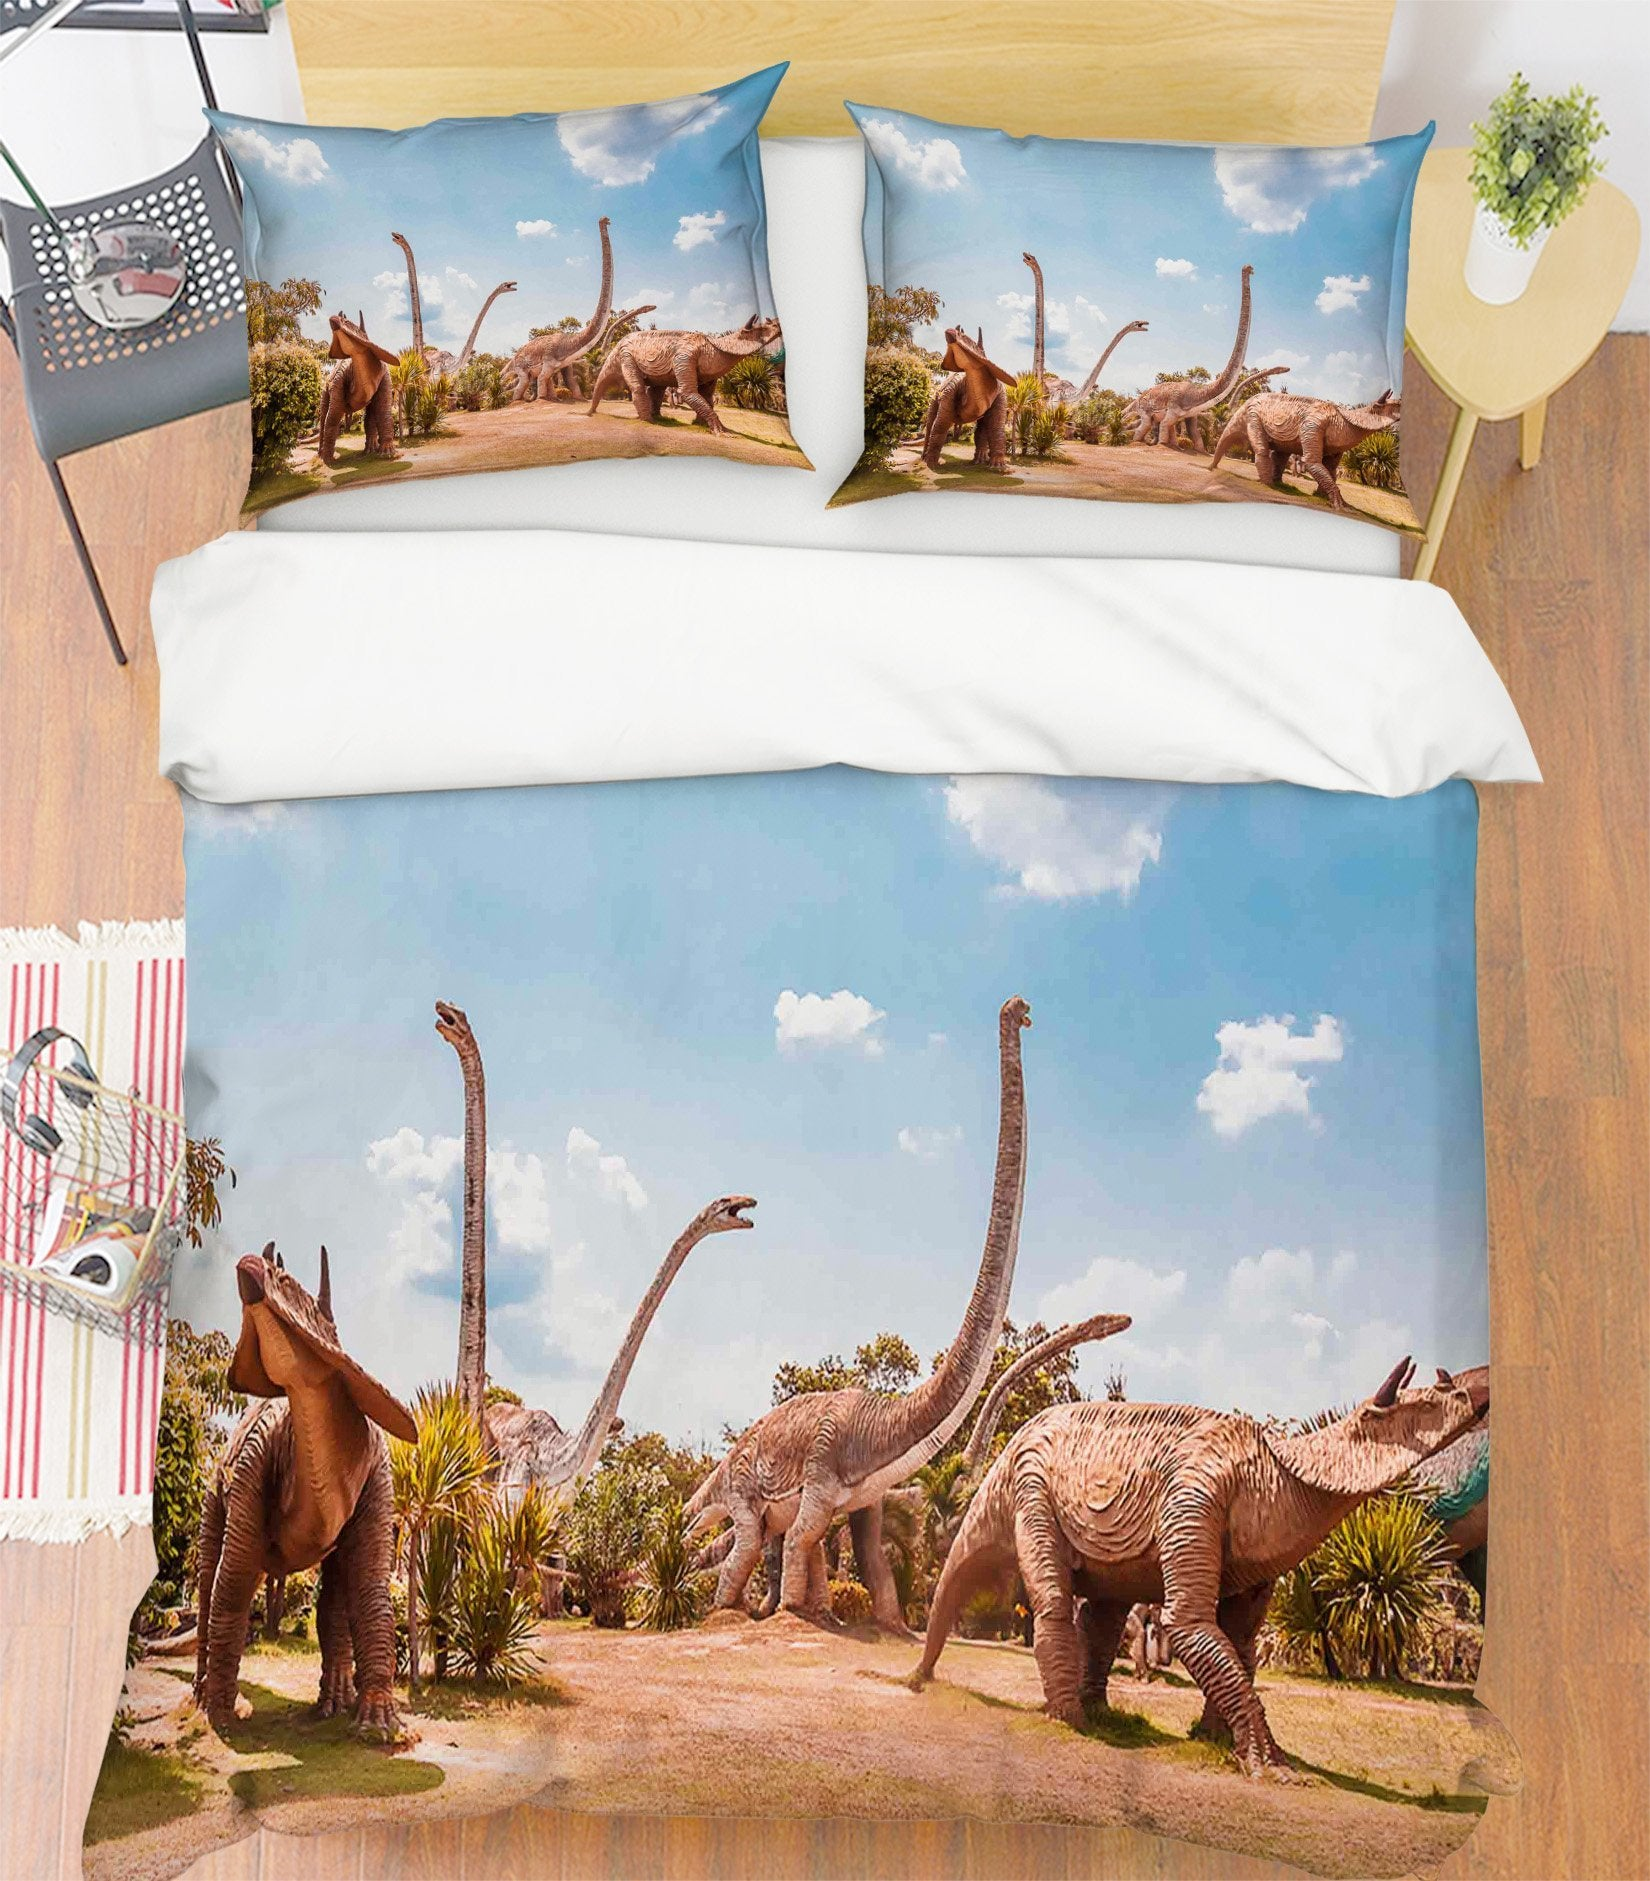 3D Brontosaurus Group 089 Bed Pillowcases Quilt Wallpaper AJ Wallpaper